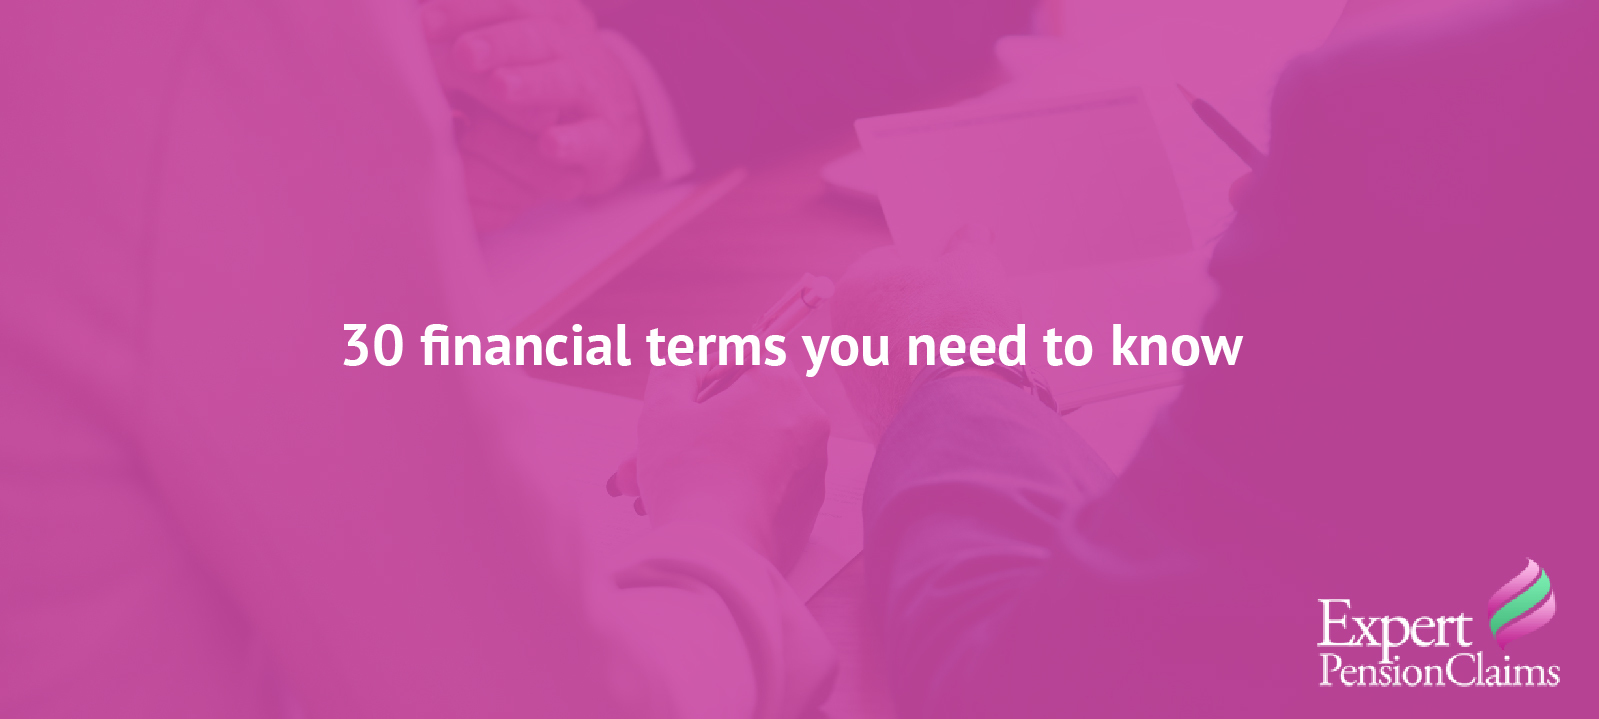 30 financial terms you need to know